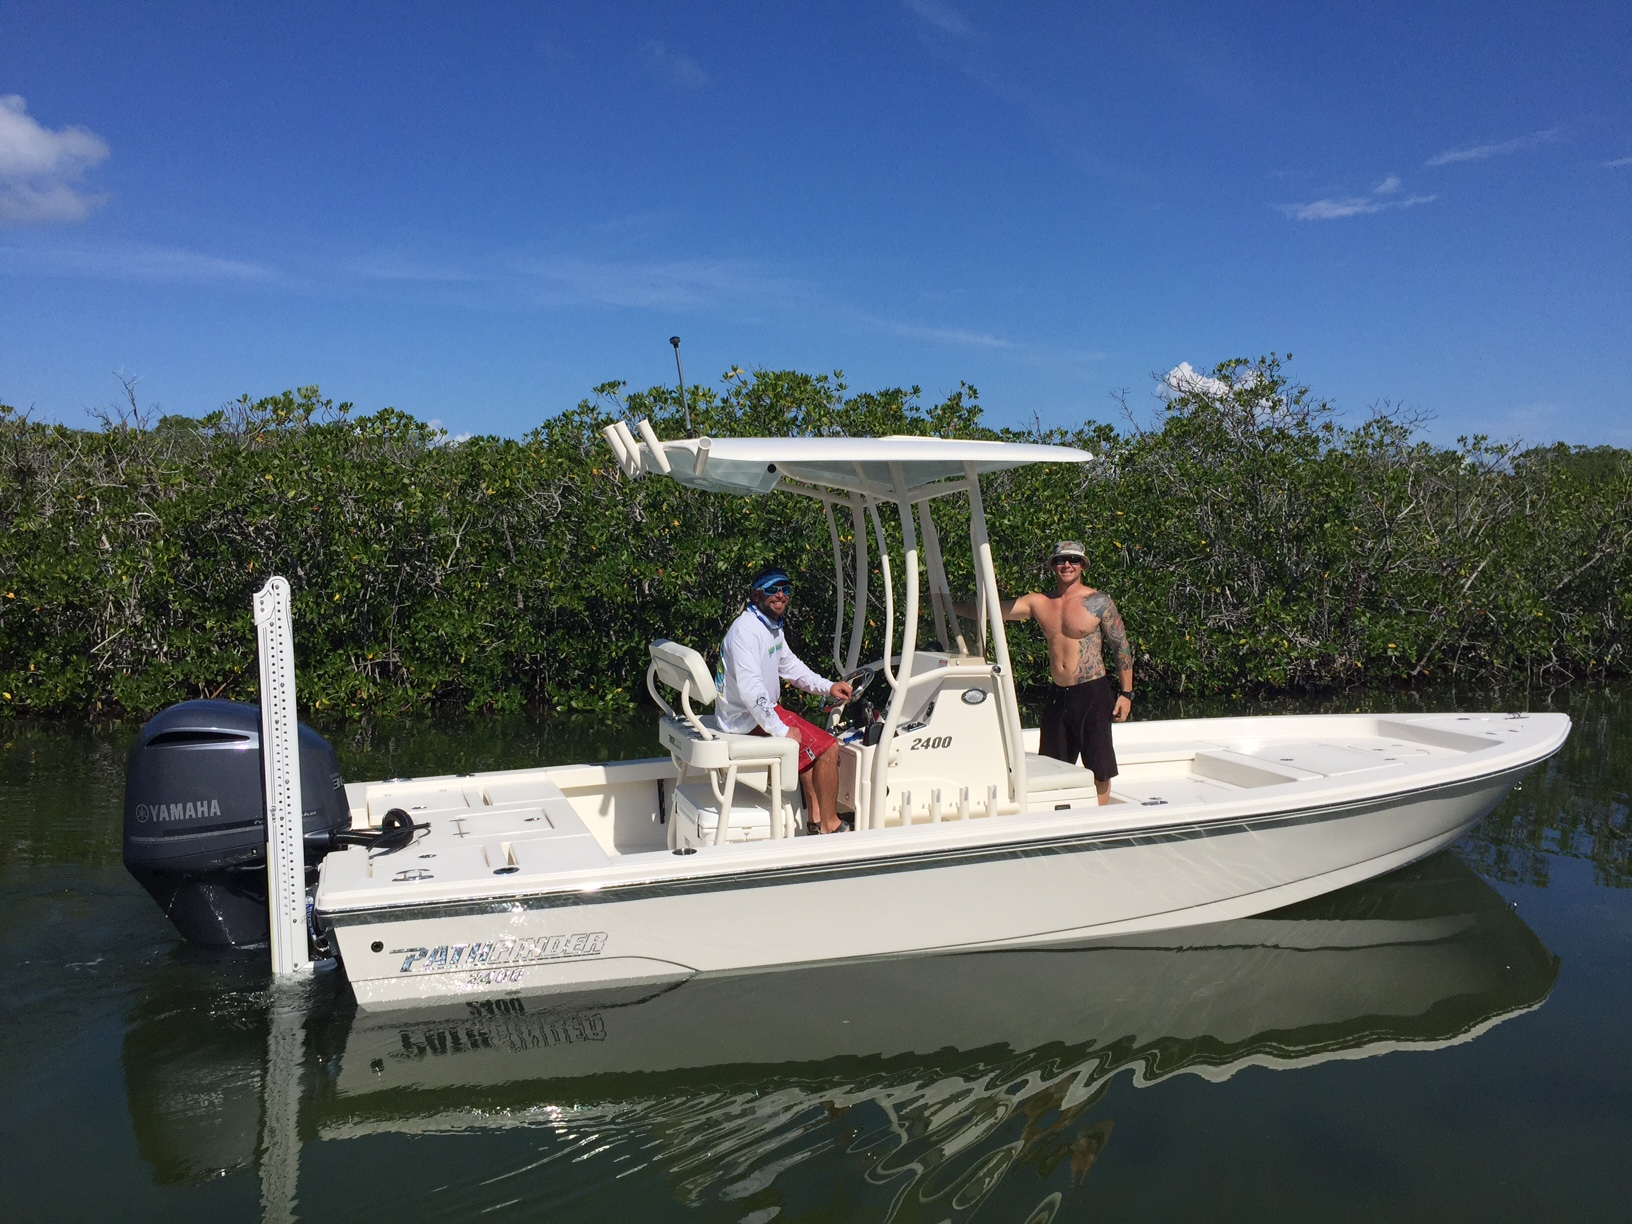 We just added this 2015 24ft Pathfinder to our fleet here at Florida Keys fishing charters in Marathon.